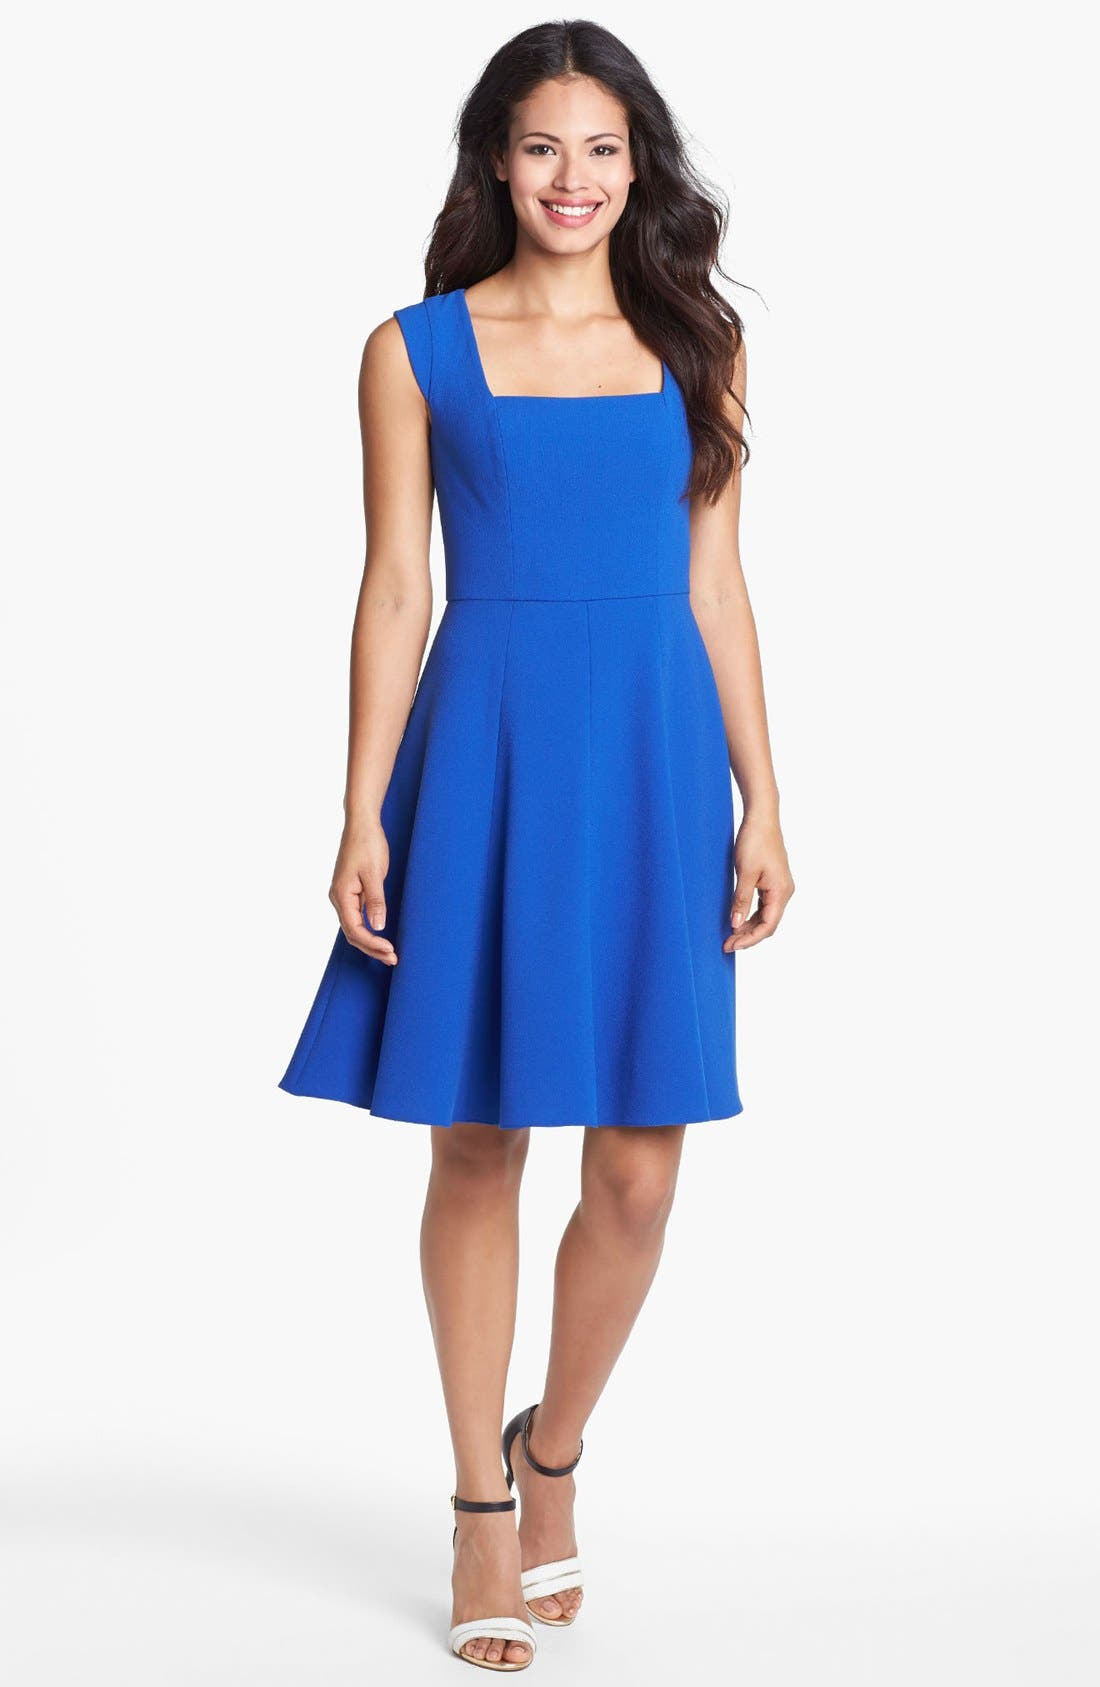 Main Image - Ivy & Blu for Maggy Boutique Fit & Flare Dress (Petite)